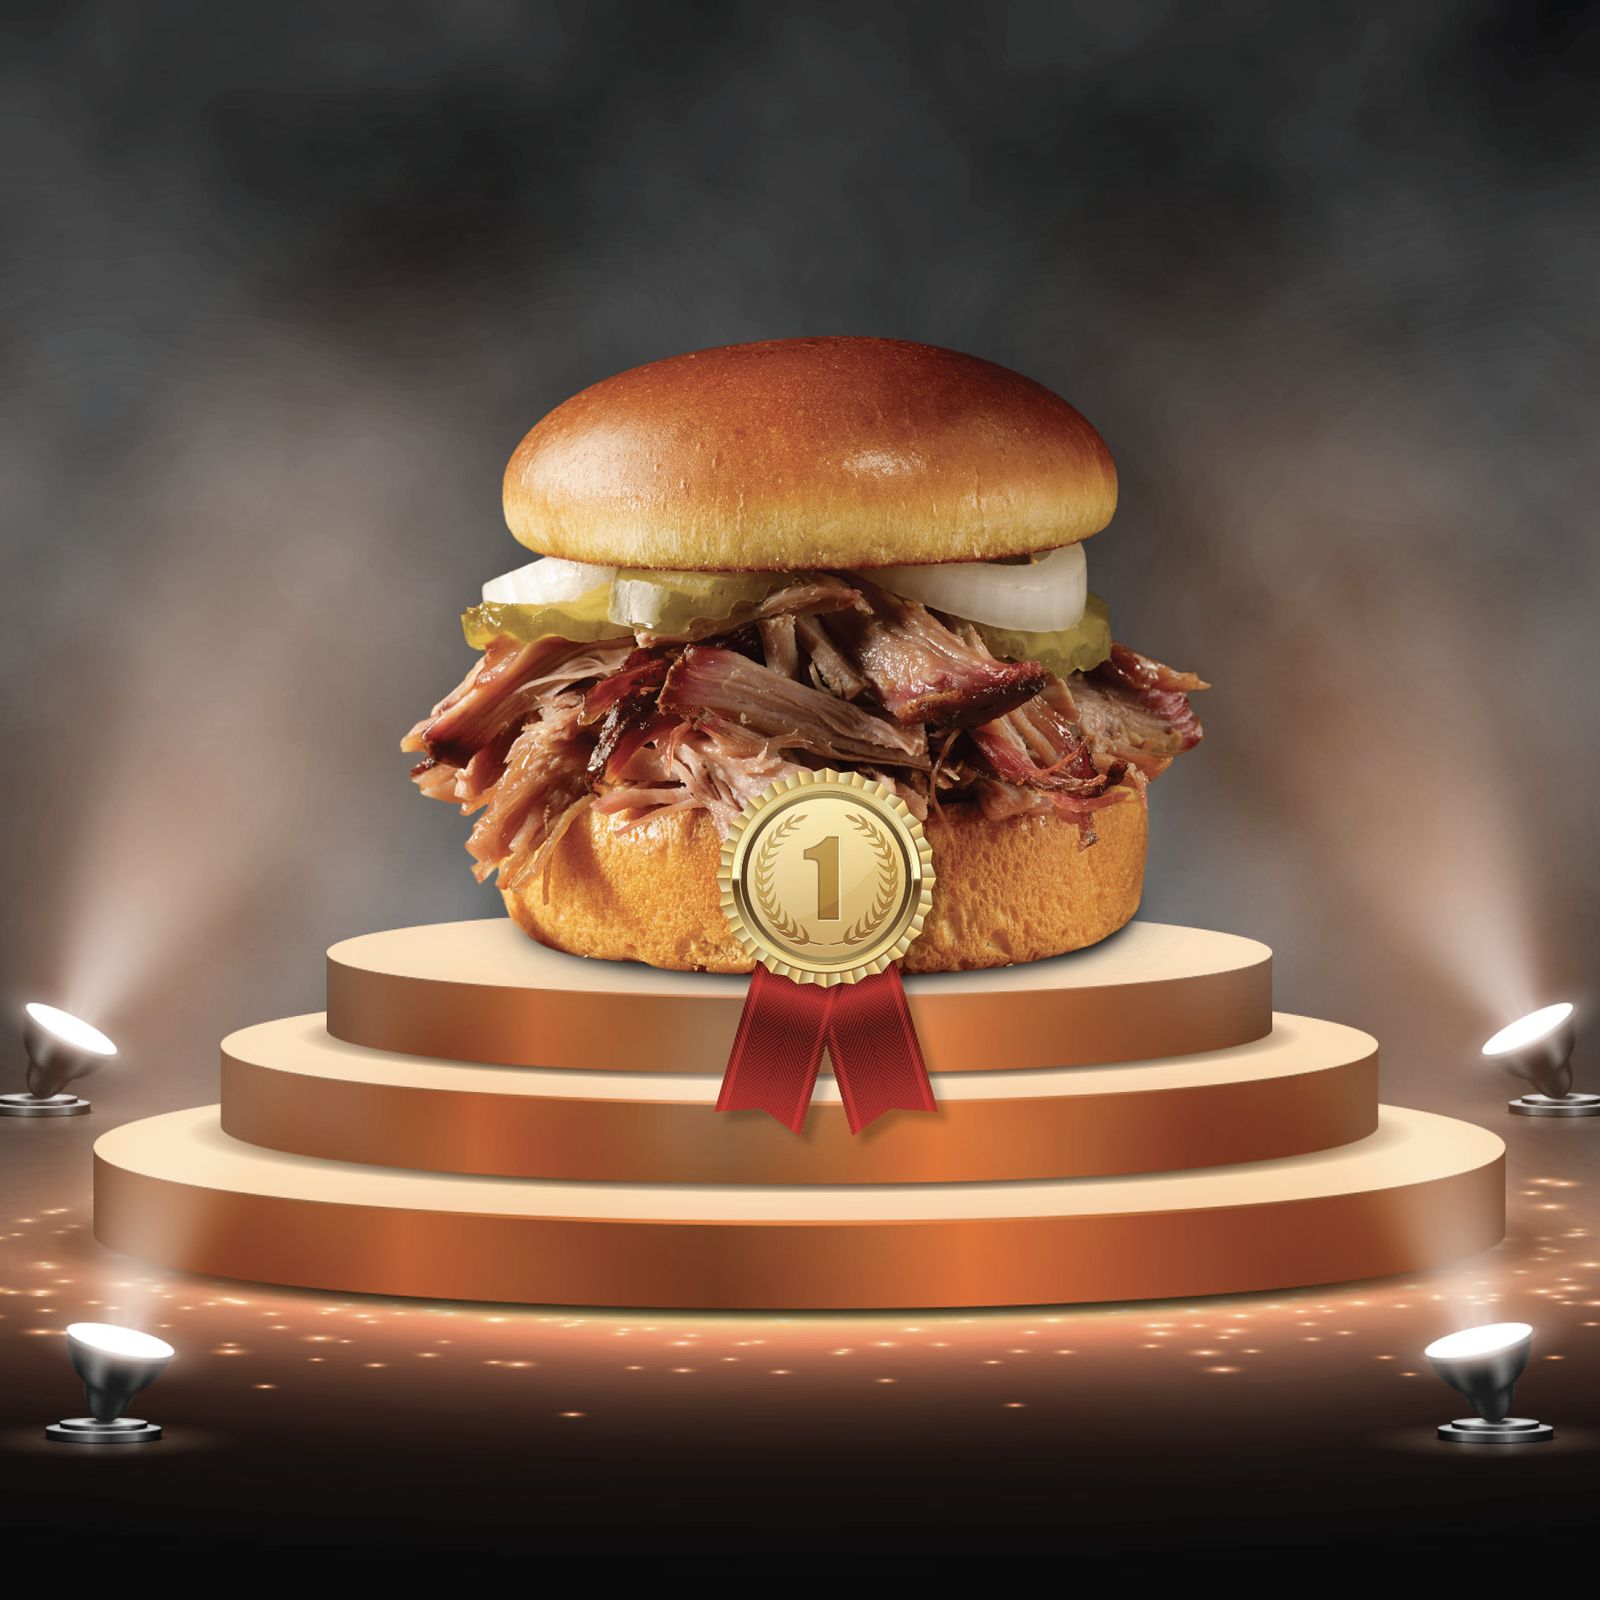 Dickey's Barbecue Pit Celebrates the Summer of Gold